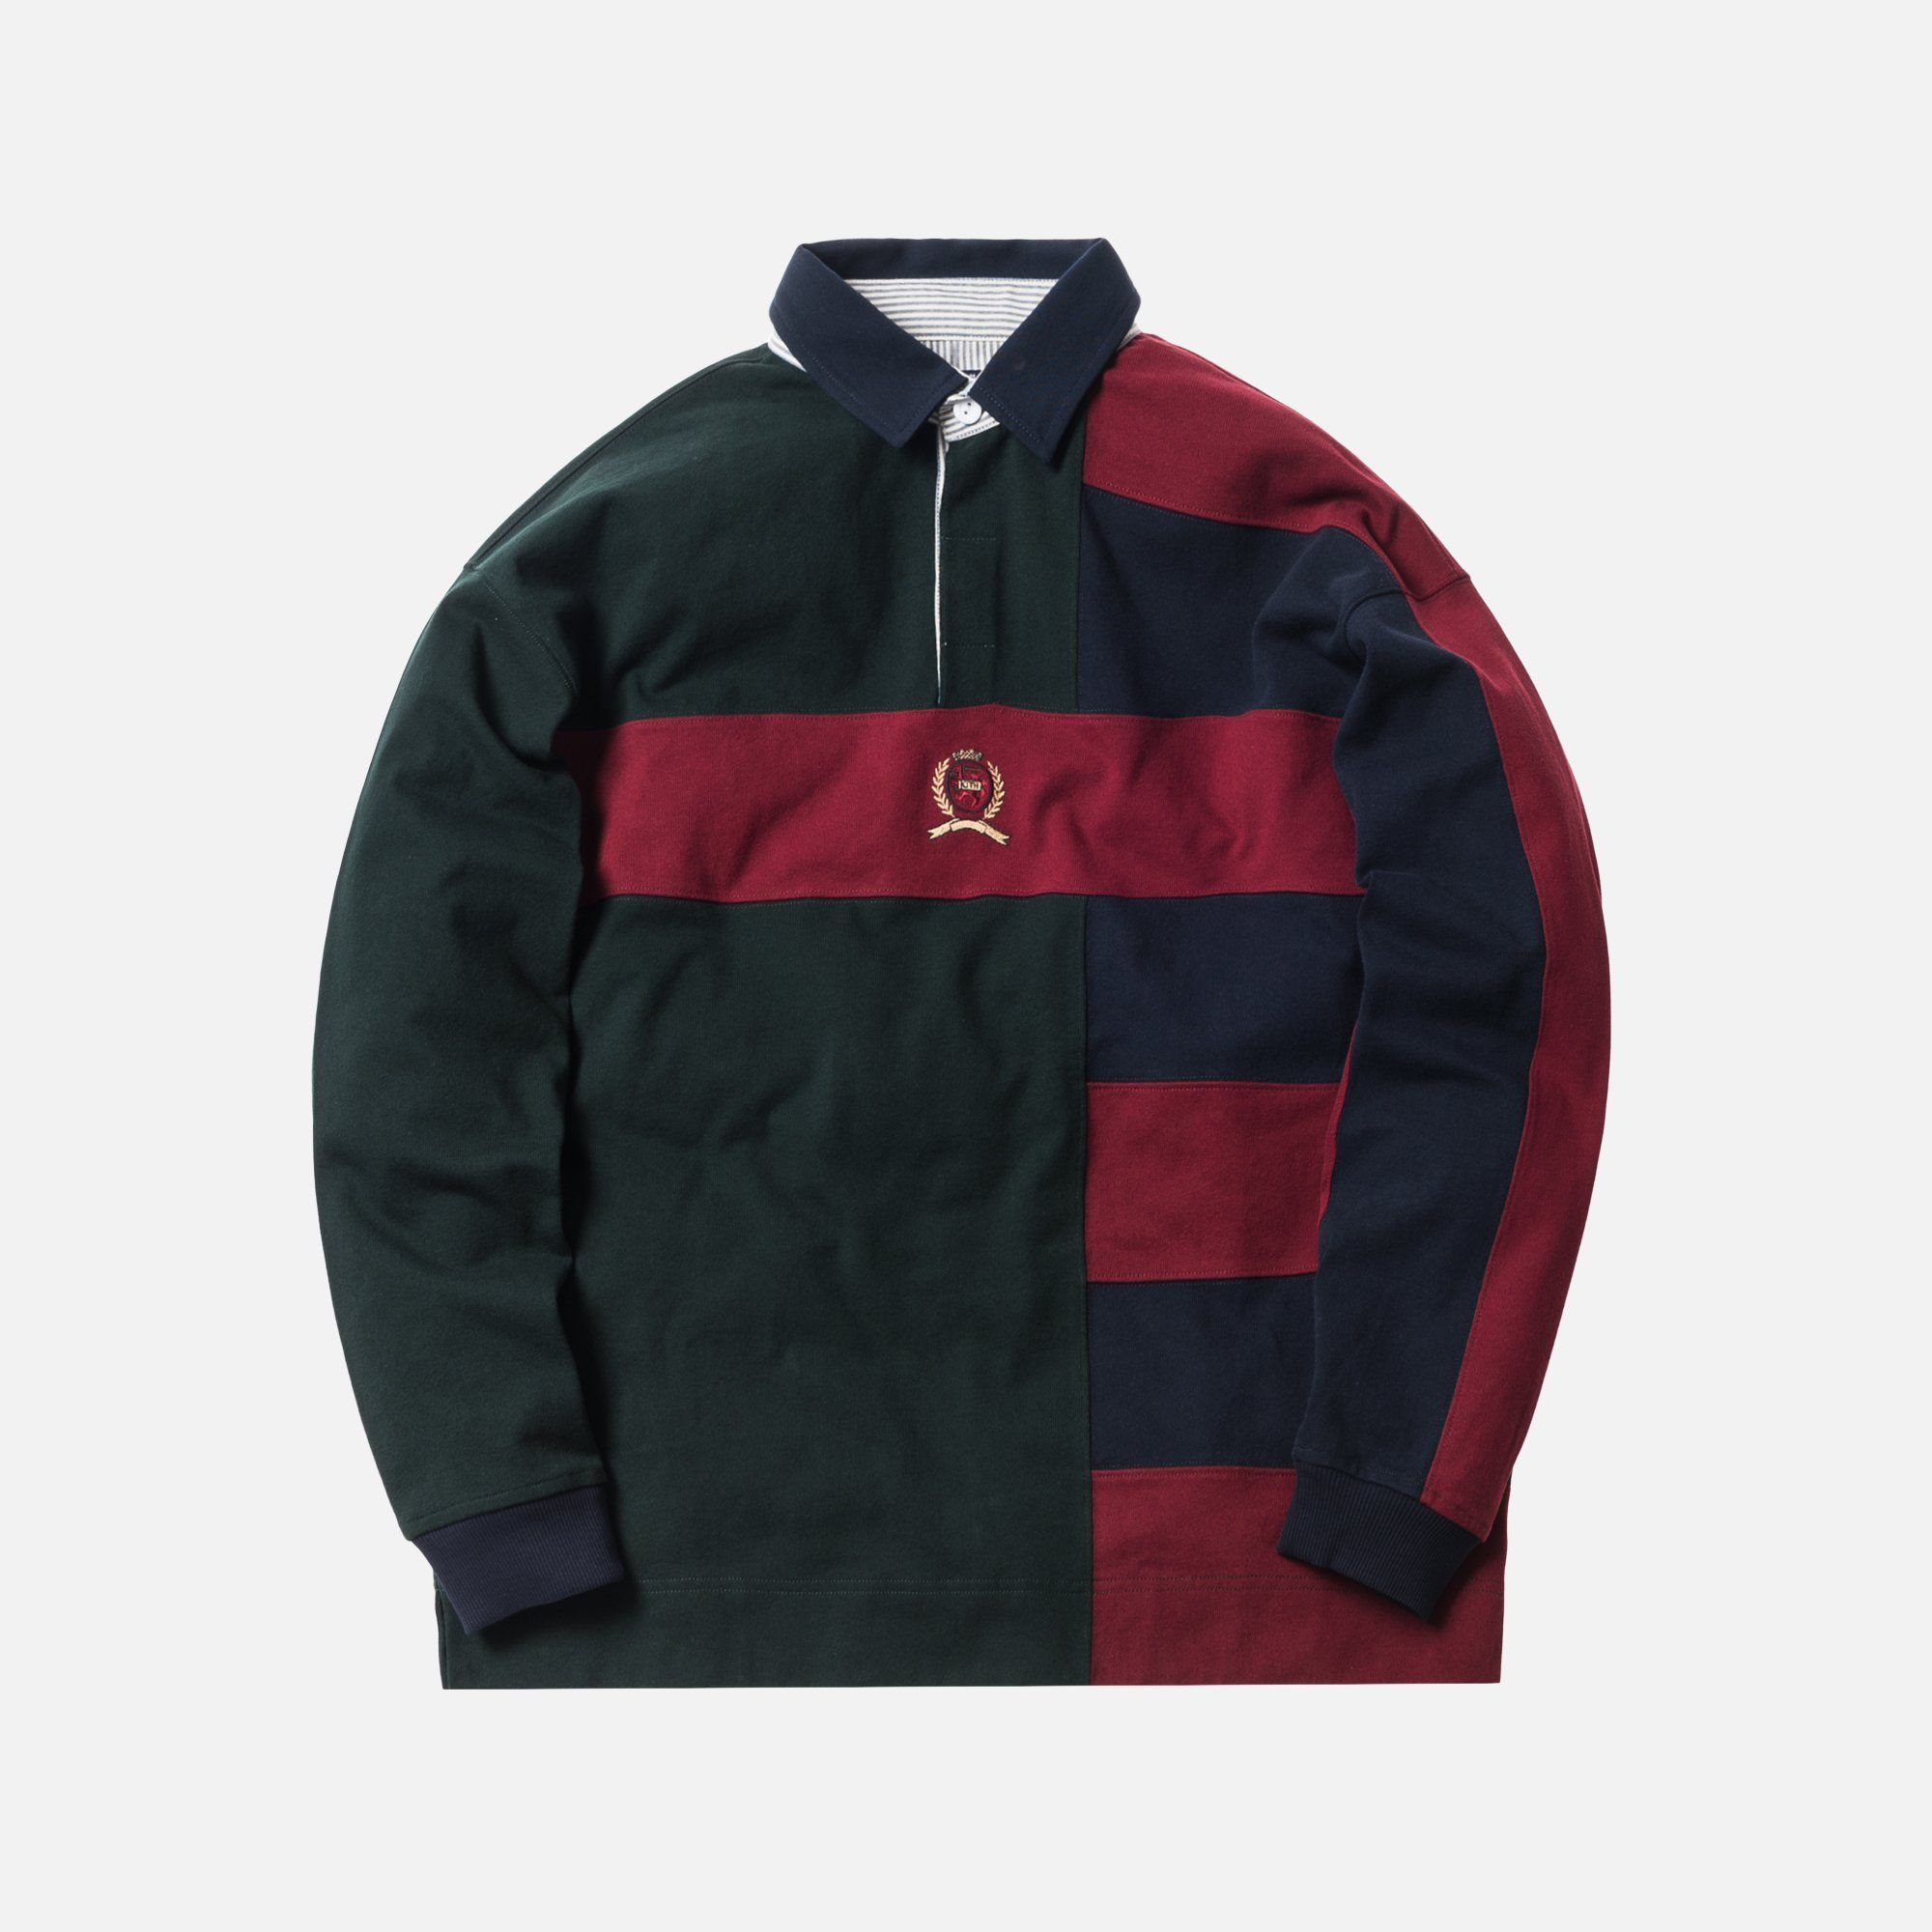 8e9f8f8a Kith x Tommy Hilfiger Color Block Rugby - Forest | Young men's FA19 ...